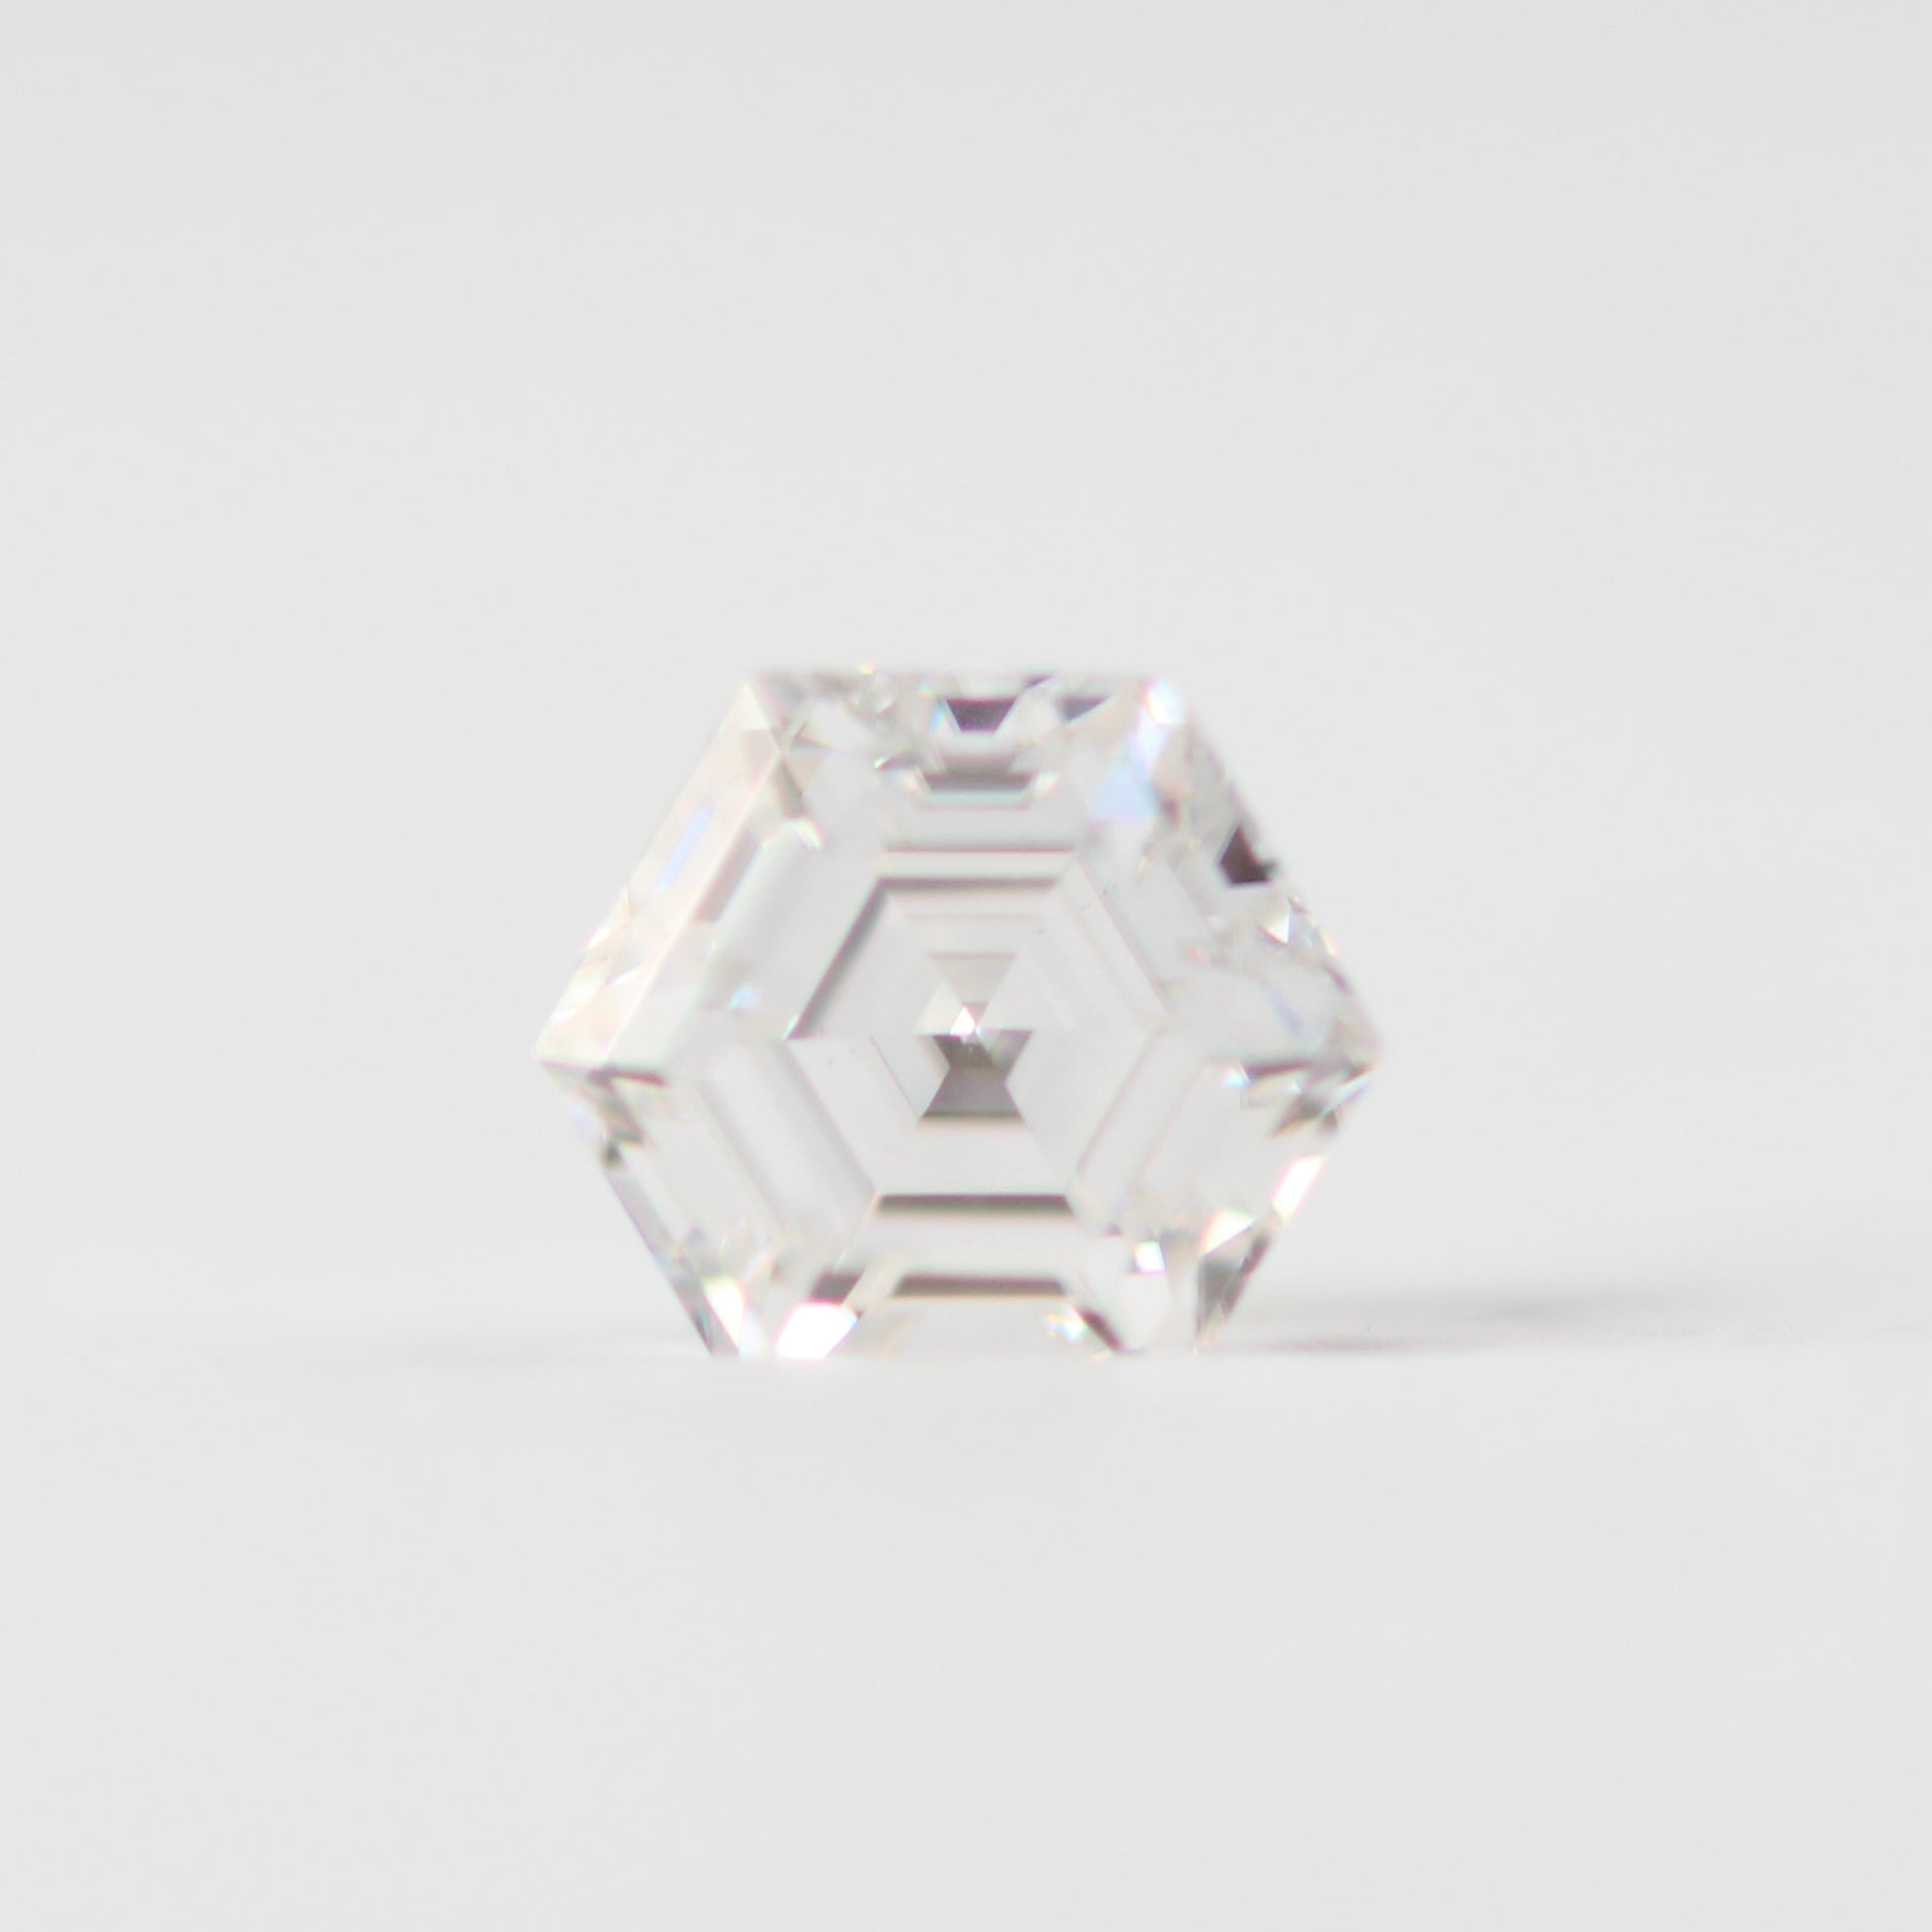 6mm Clear Hexagon Moissanite - Inventory Code MHEX1